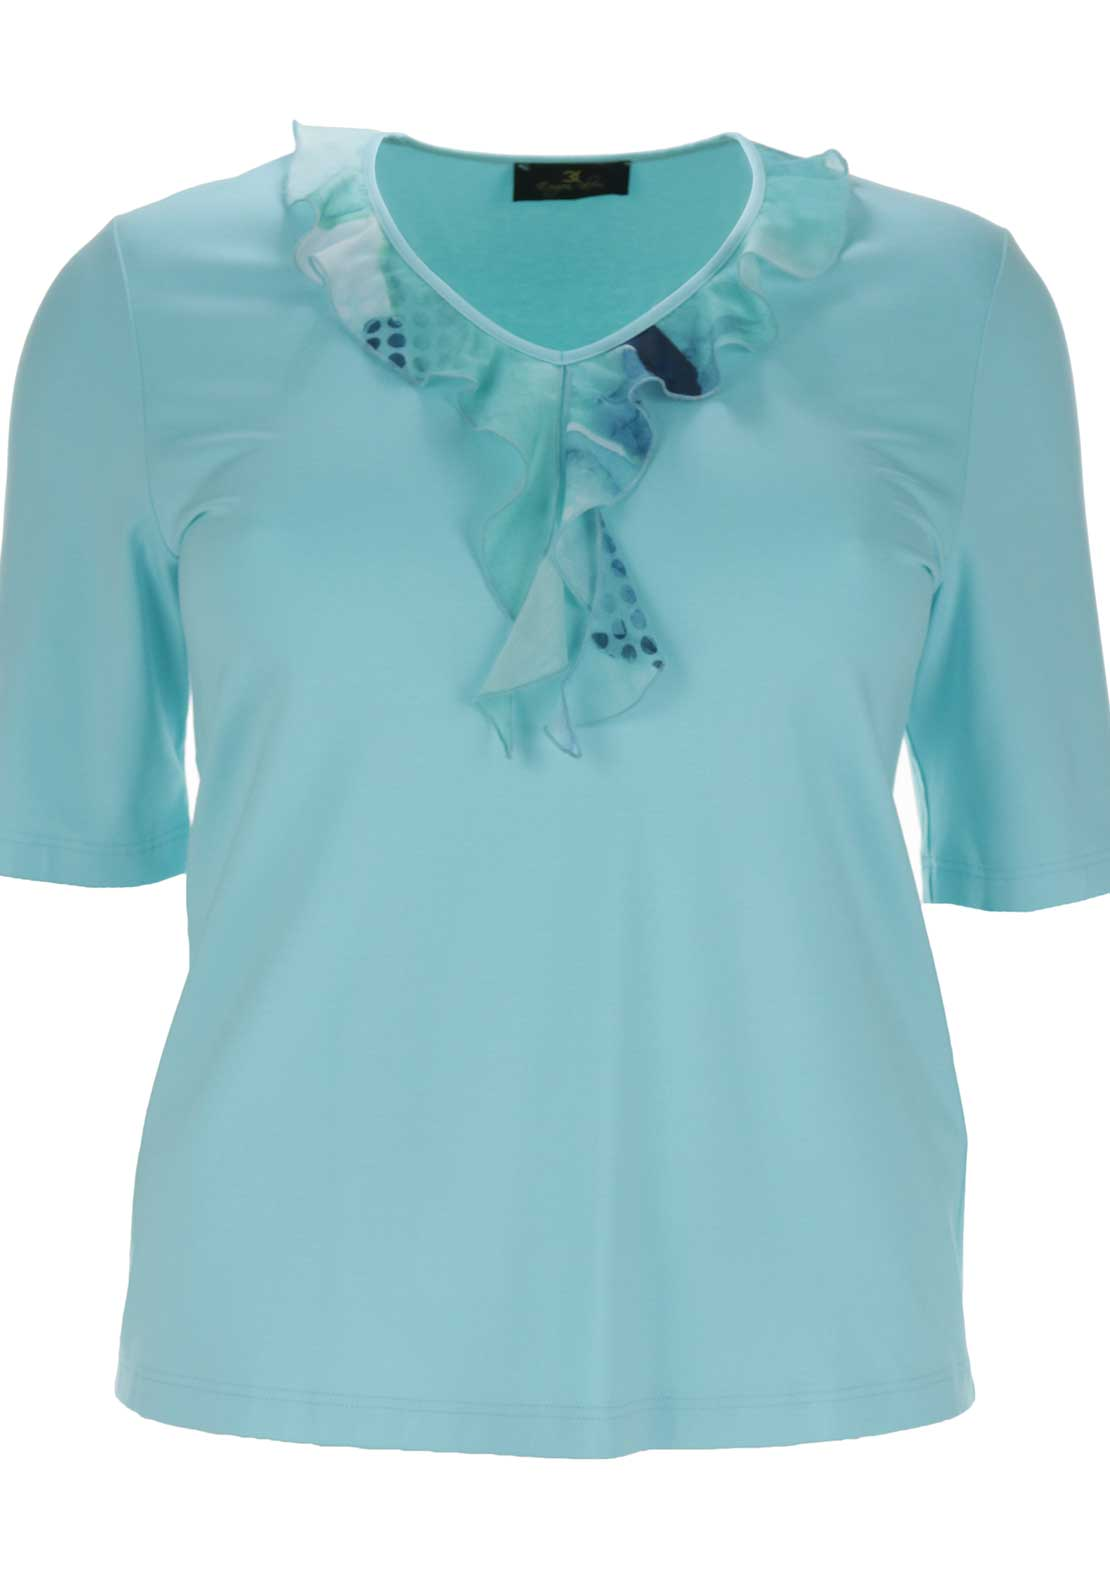 Eugen Klein Frilled Detail Top, Turquoise